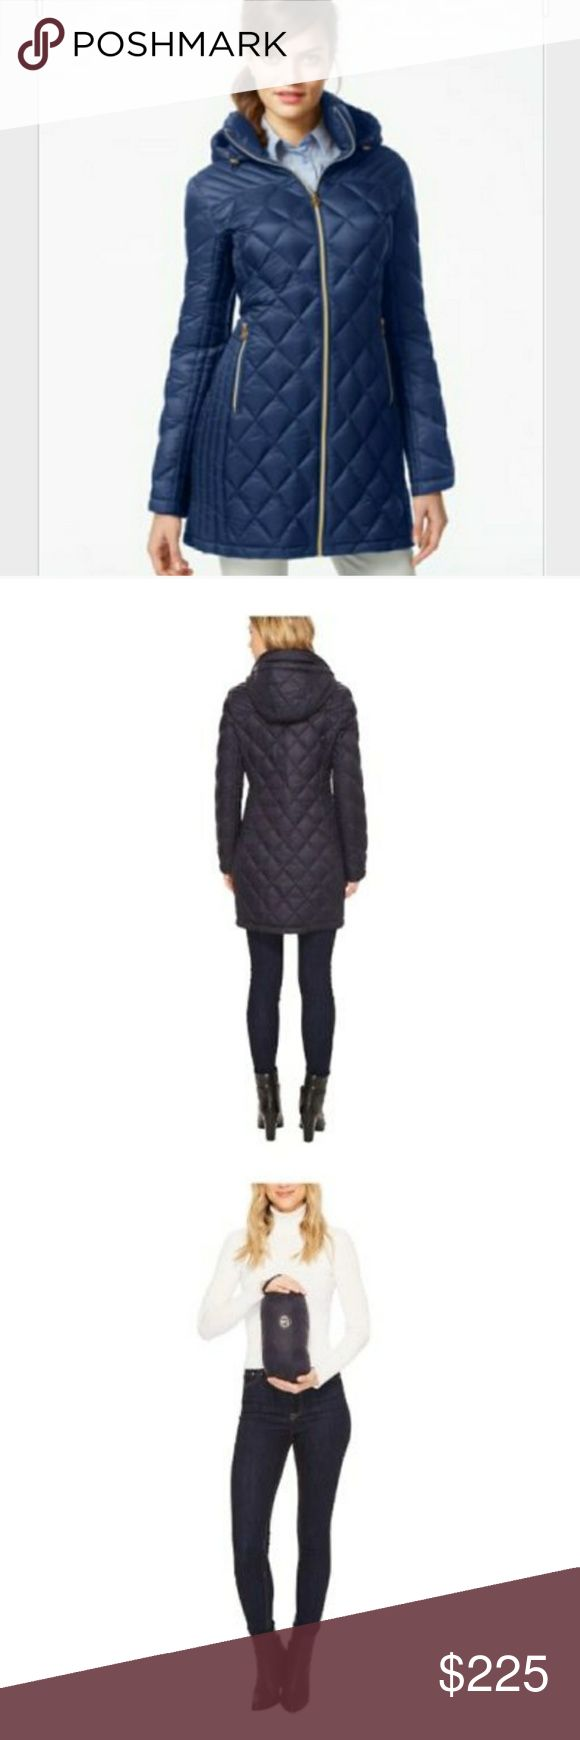 Michael Kors Packable Down Puffer Coat - Dark Blue New with tags.  Dark blue light weight down-filled quilted coat with detachable hood. Fully lined, zipper closure, 2 pockets with zippers, machine wash. Made from down & nylon for durability & easy care. Packs down for space-saving storage. Michael Kors Jackets & Coats Puffers